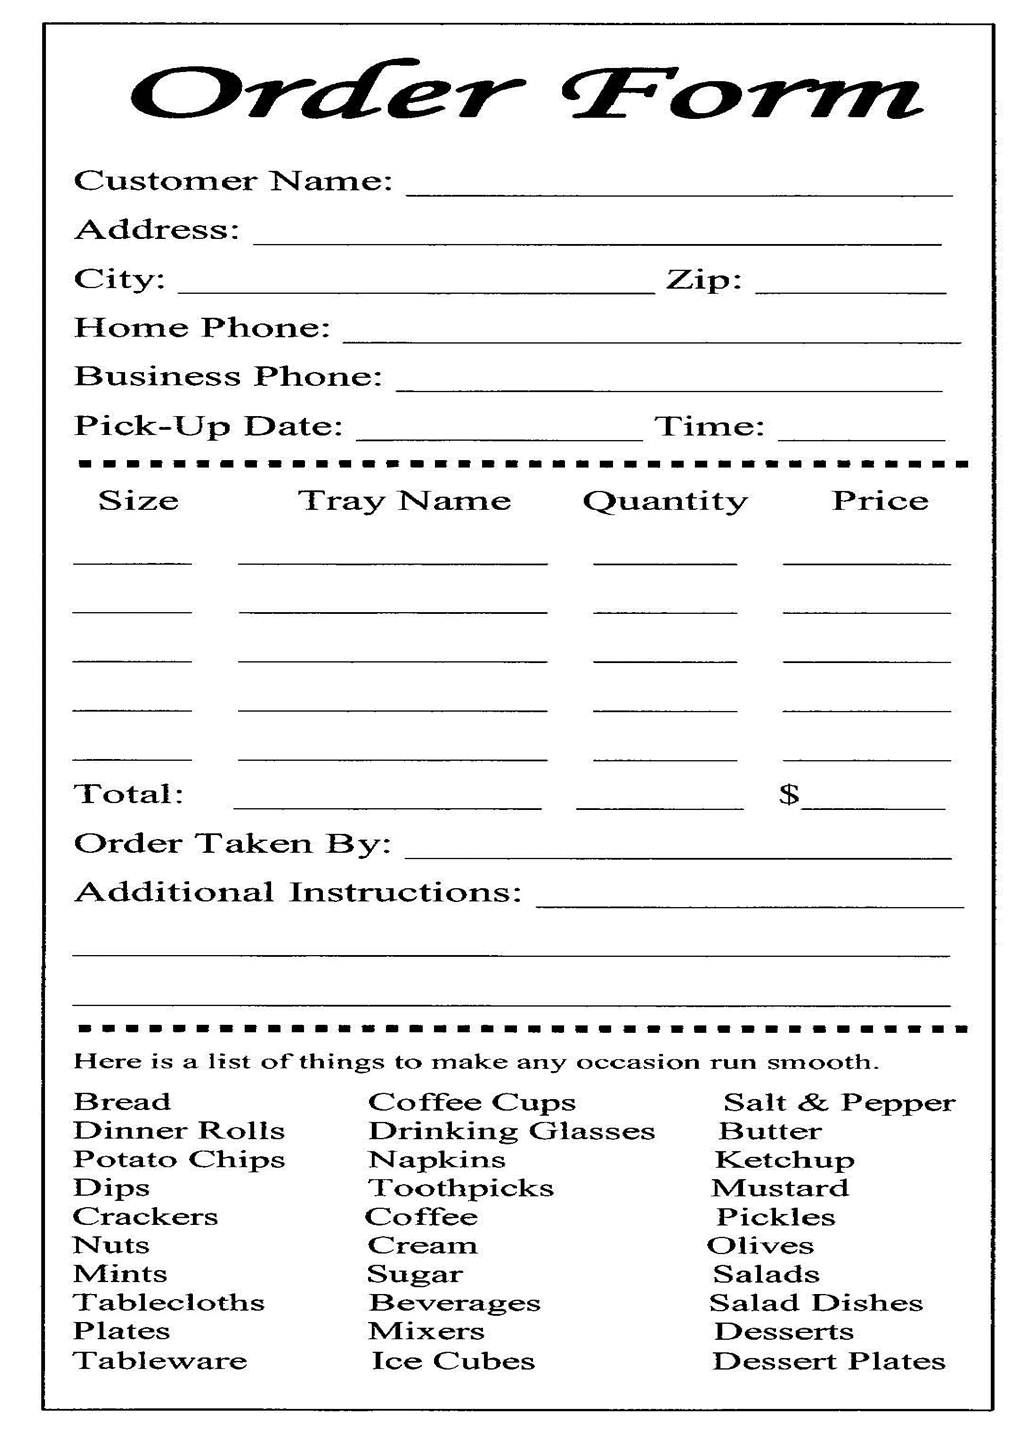 Cake Ball Order Form Templates Free Bakery Order Form Template - Free invoice document template online glasses store